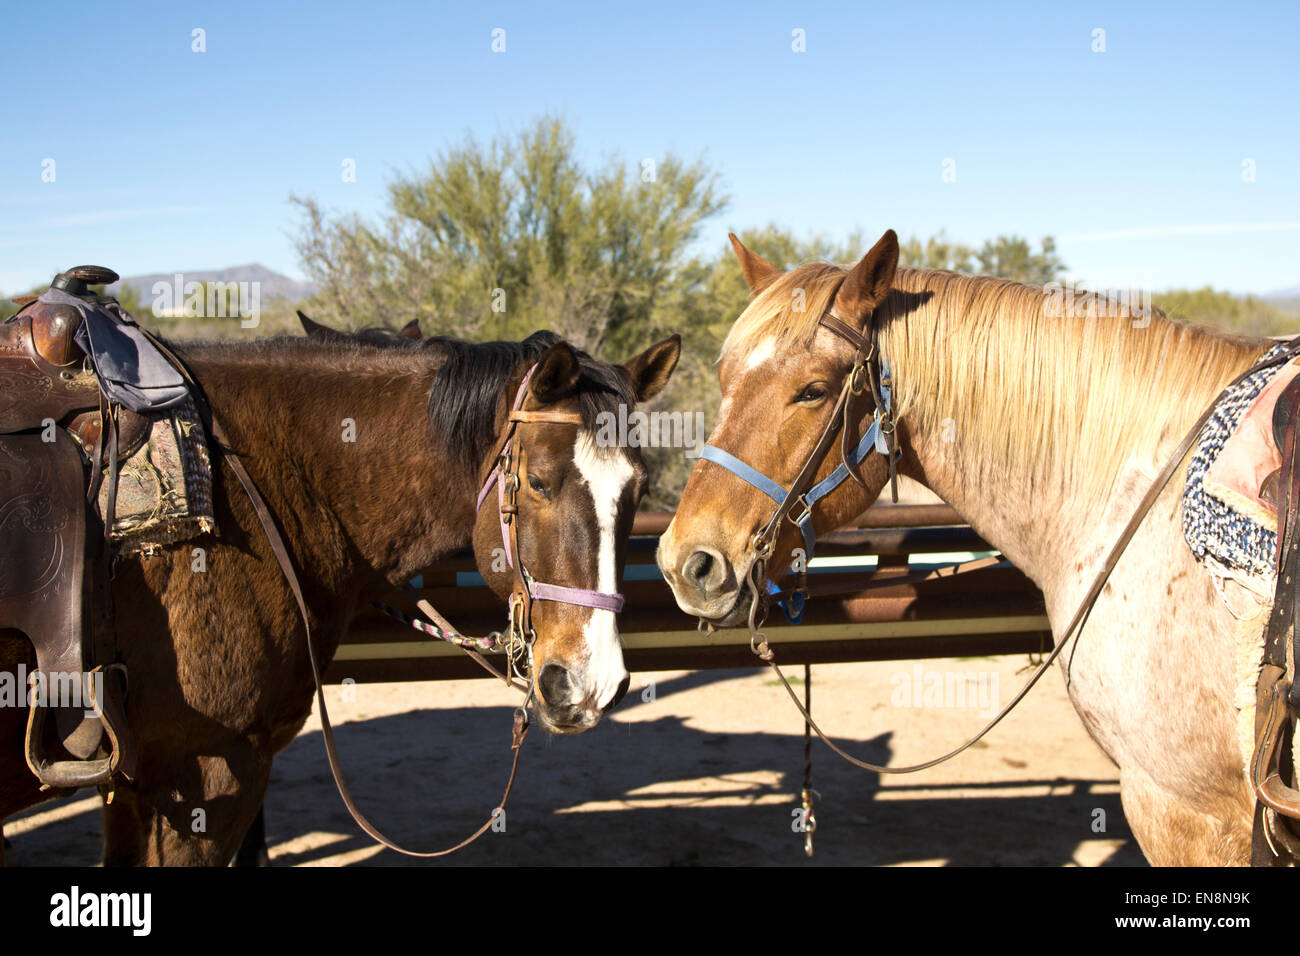 Two horses stand saddled ready for a trail ride. - Stock Image